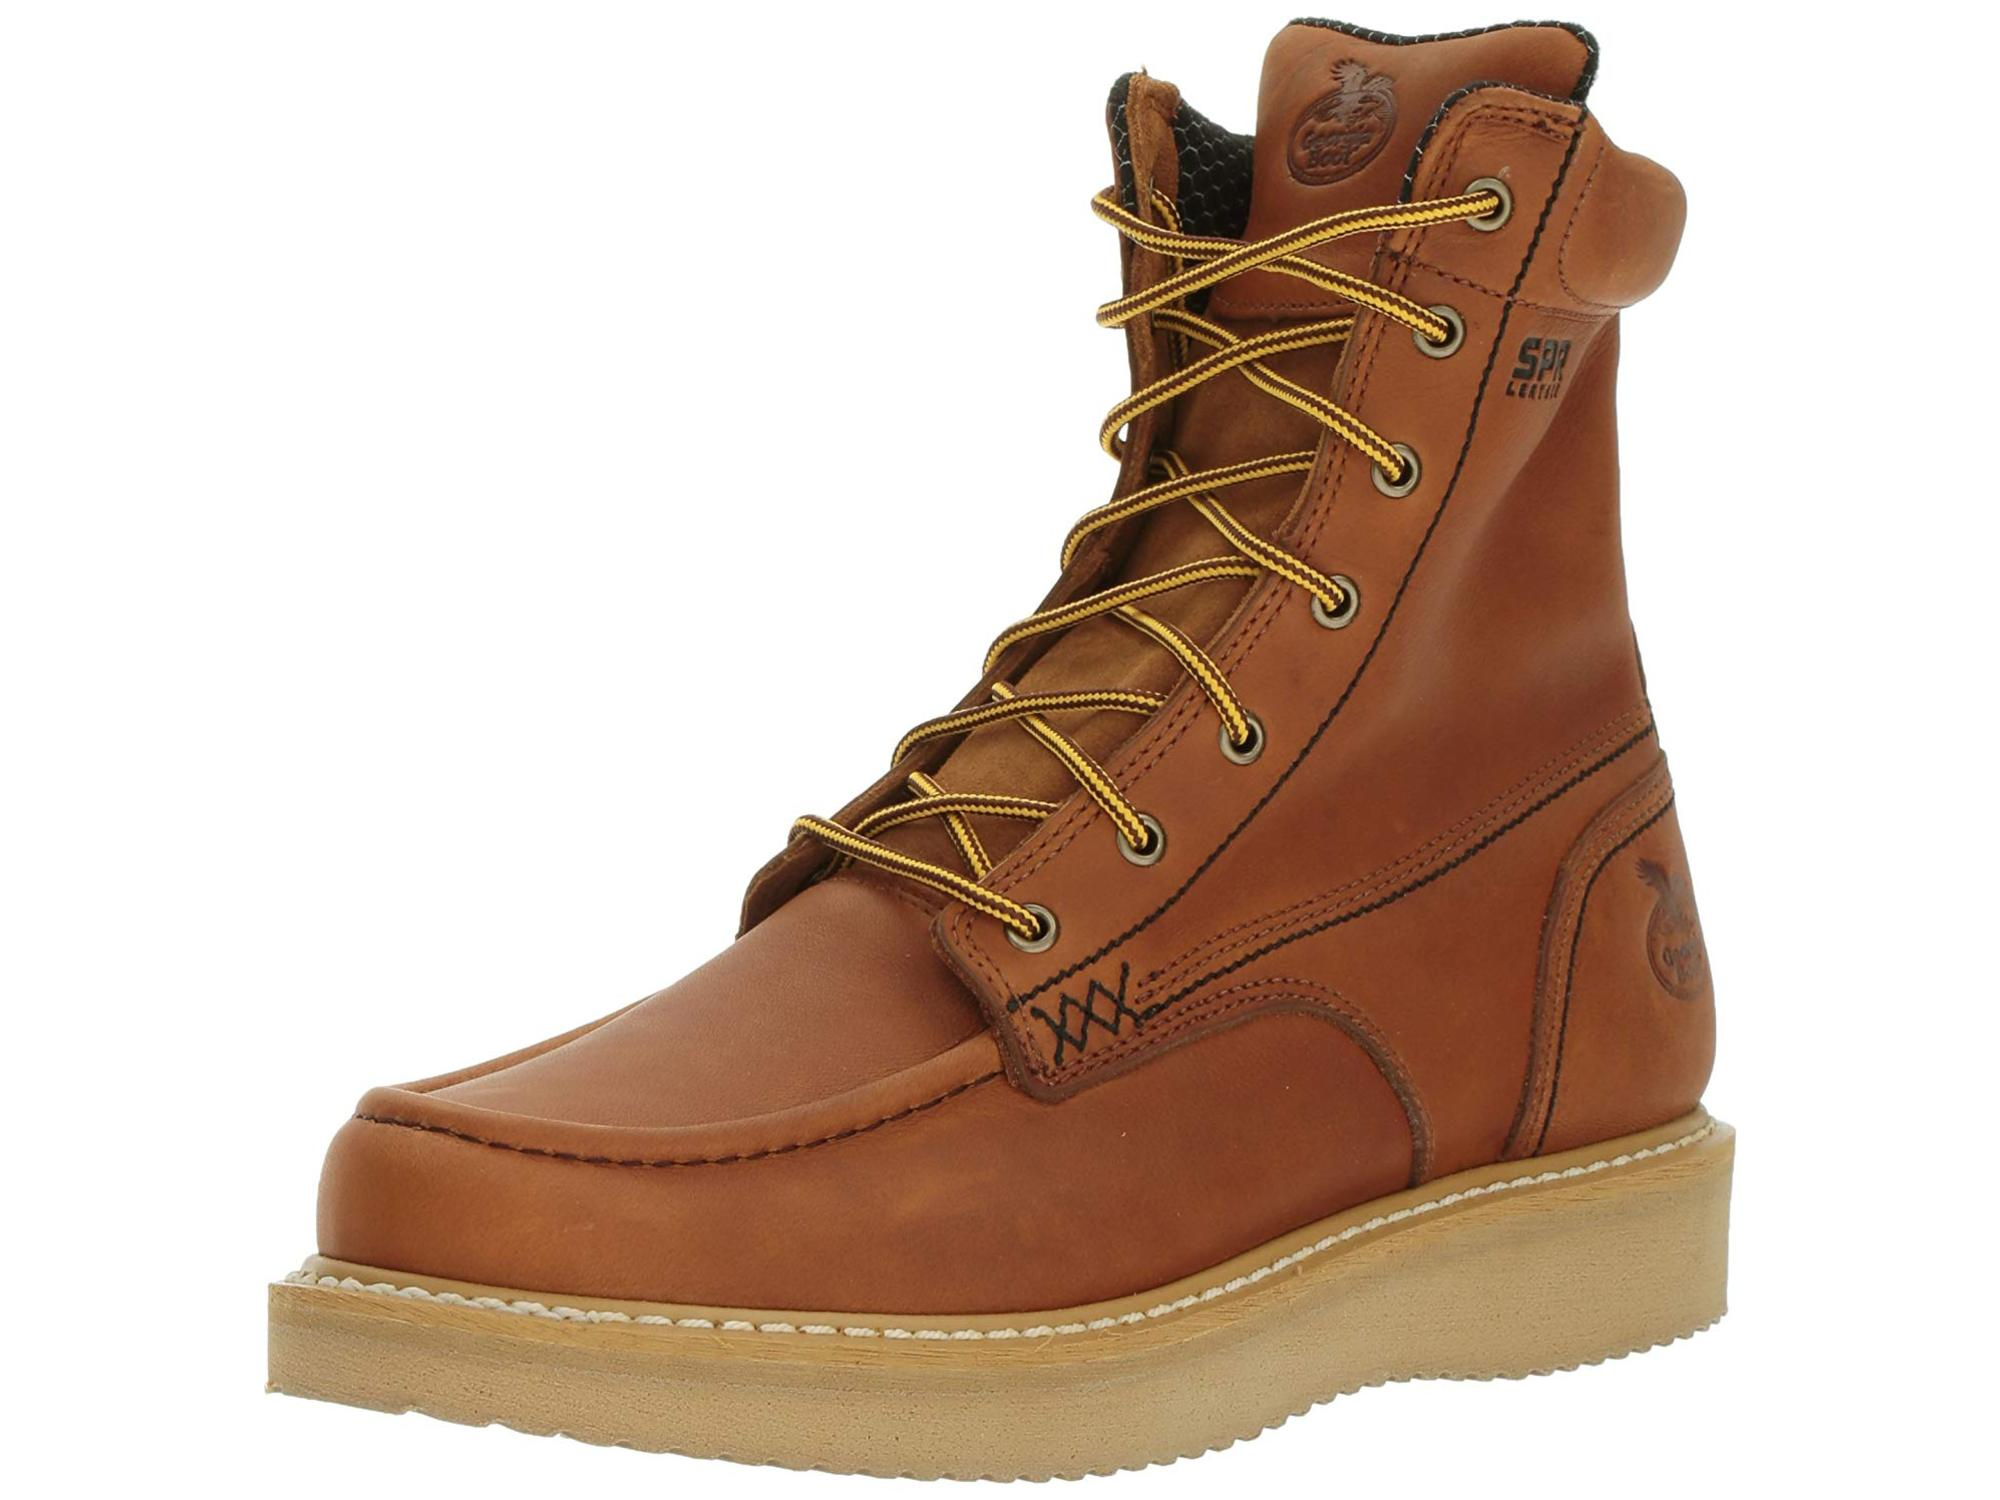 "Men's Georgia Boot GB00179 8"" Moc-Toe Wedge Work Boot by Georgia Boot"